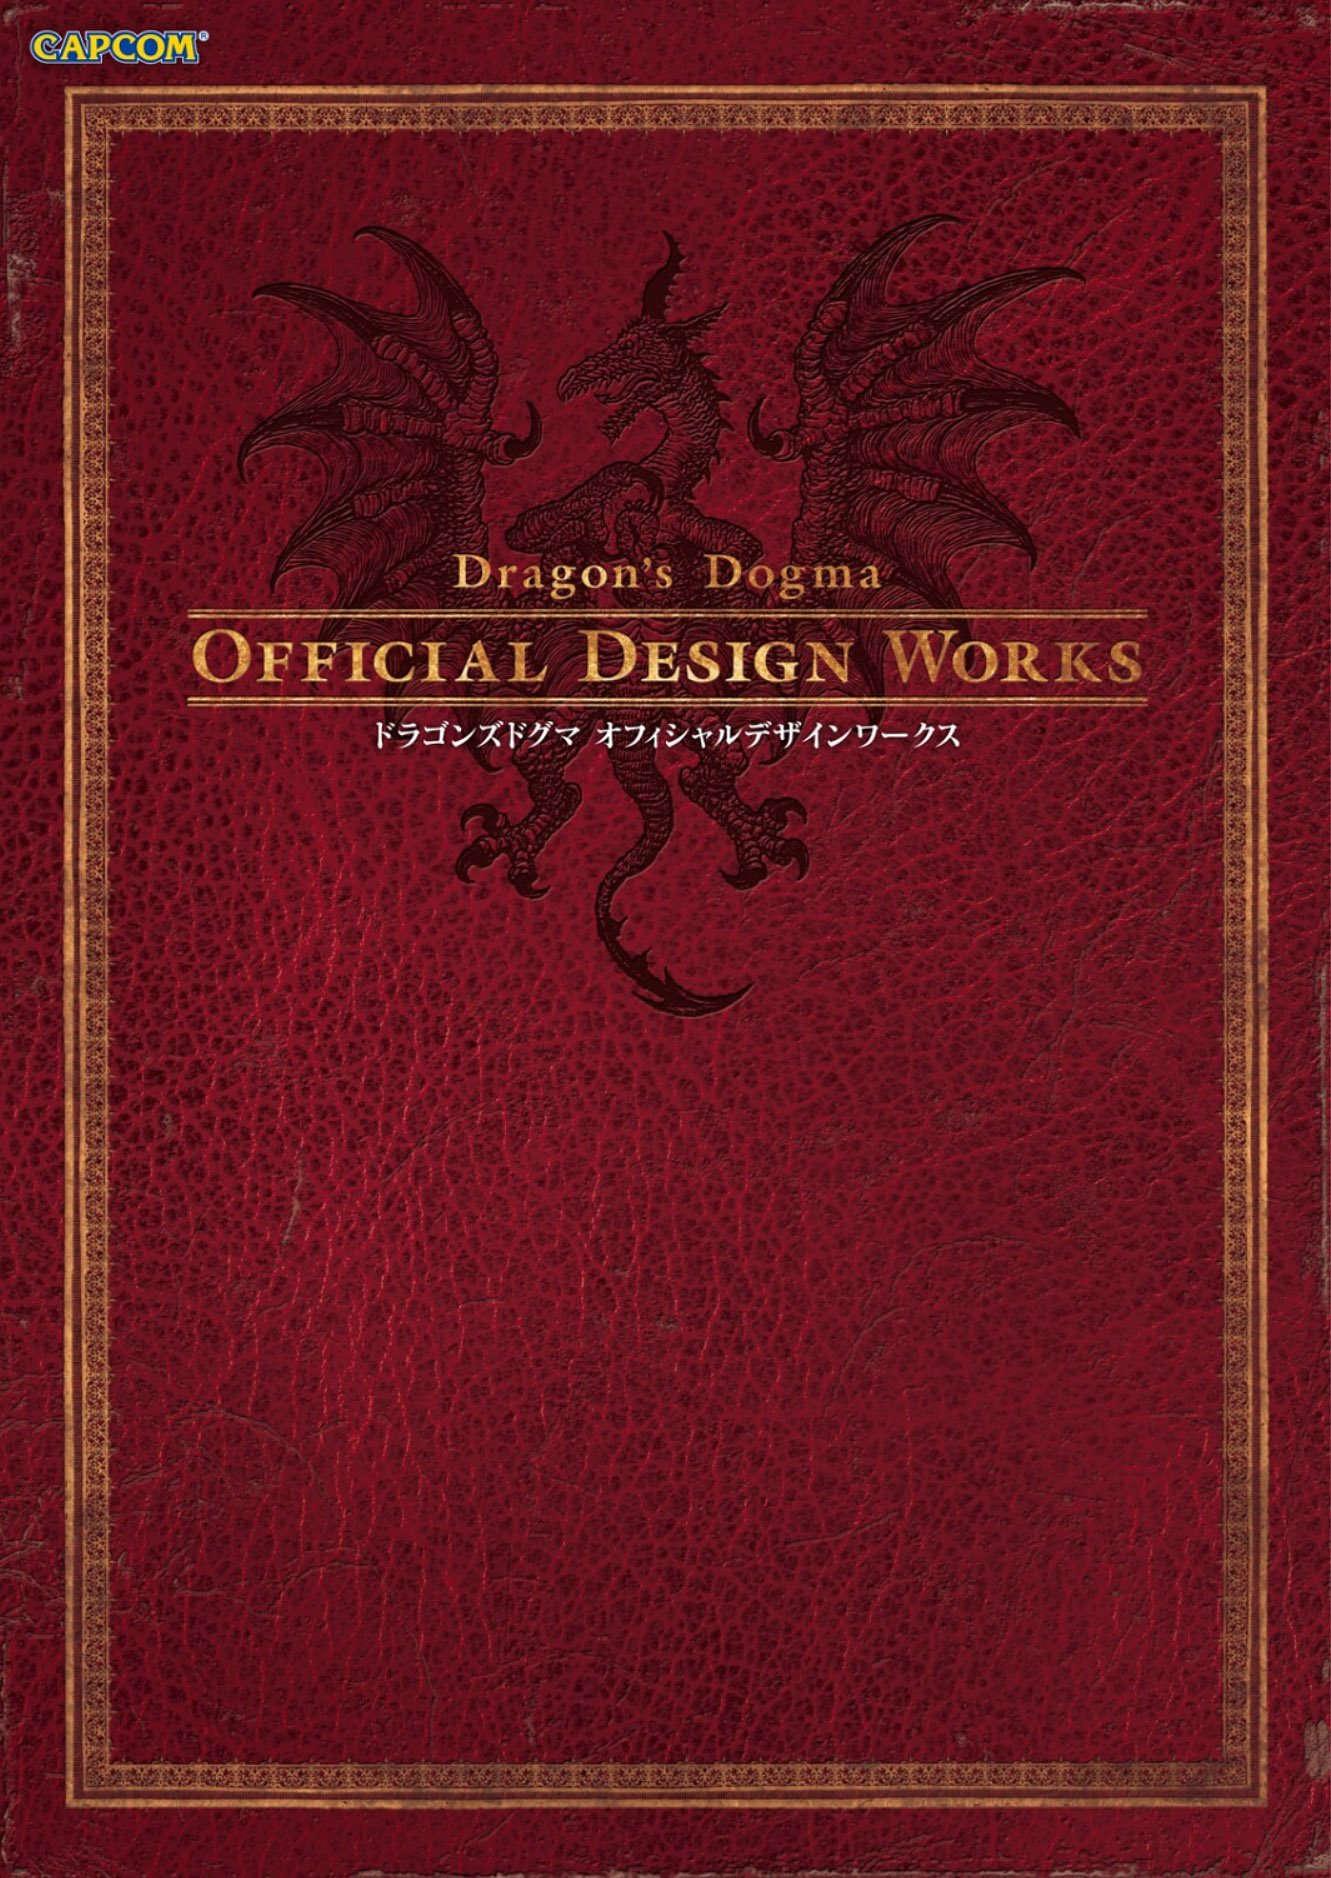 Dragon's Dogma - Official Design Works